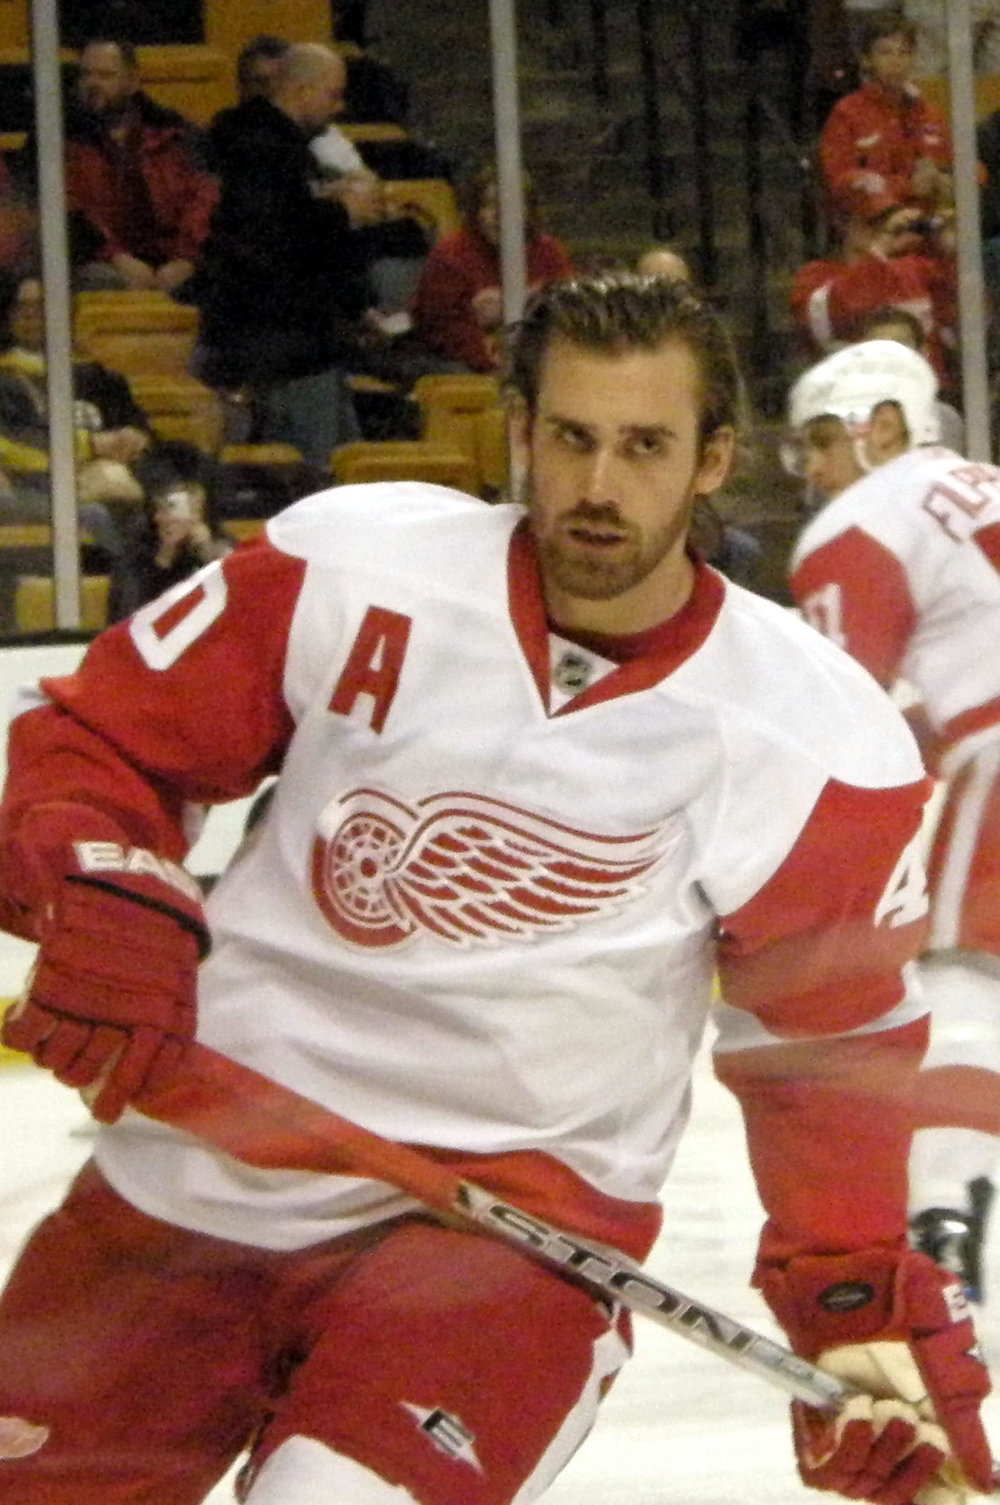 WHERE DOES ZETTERBERG RANK AS ALL-TIME BEST SWEDE?